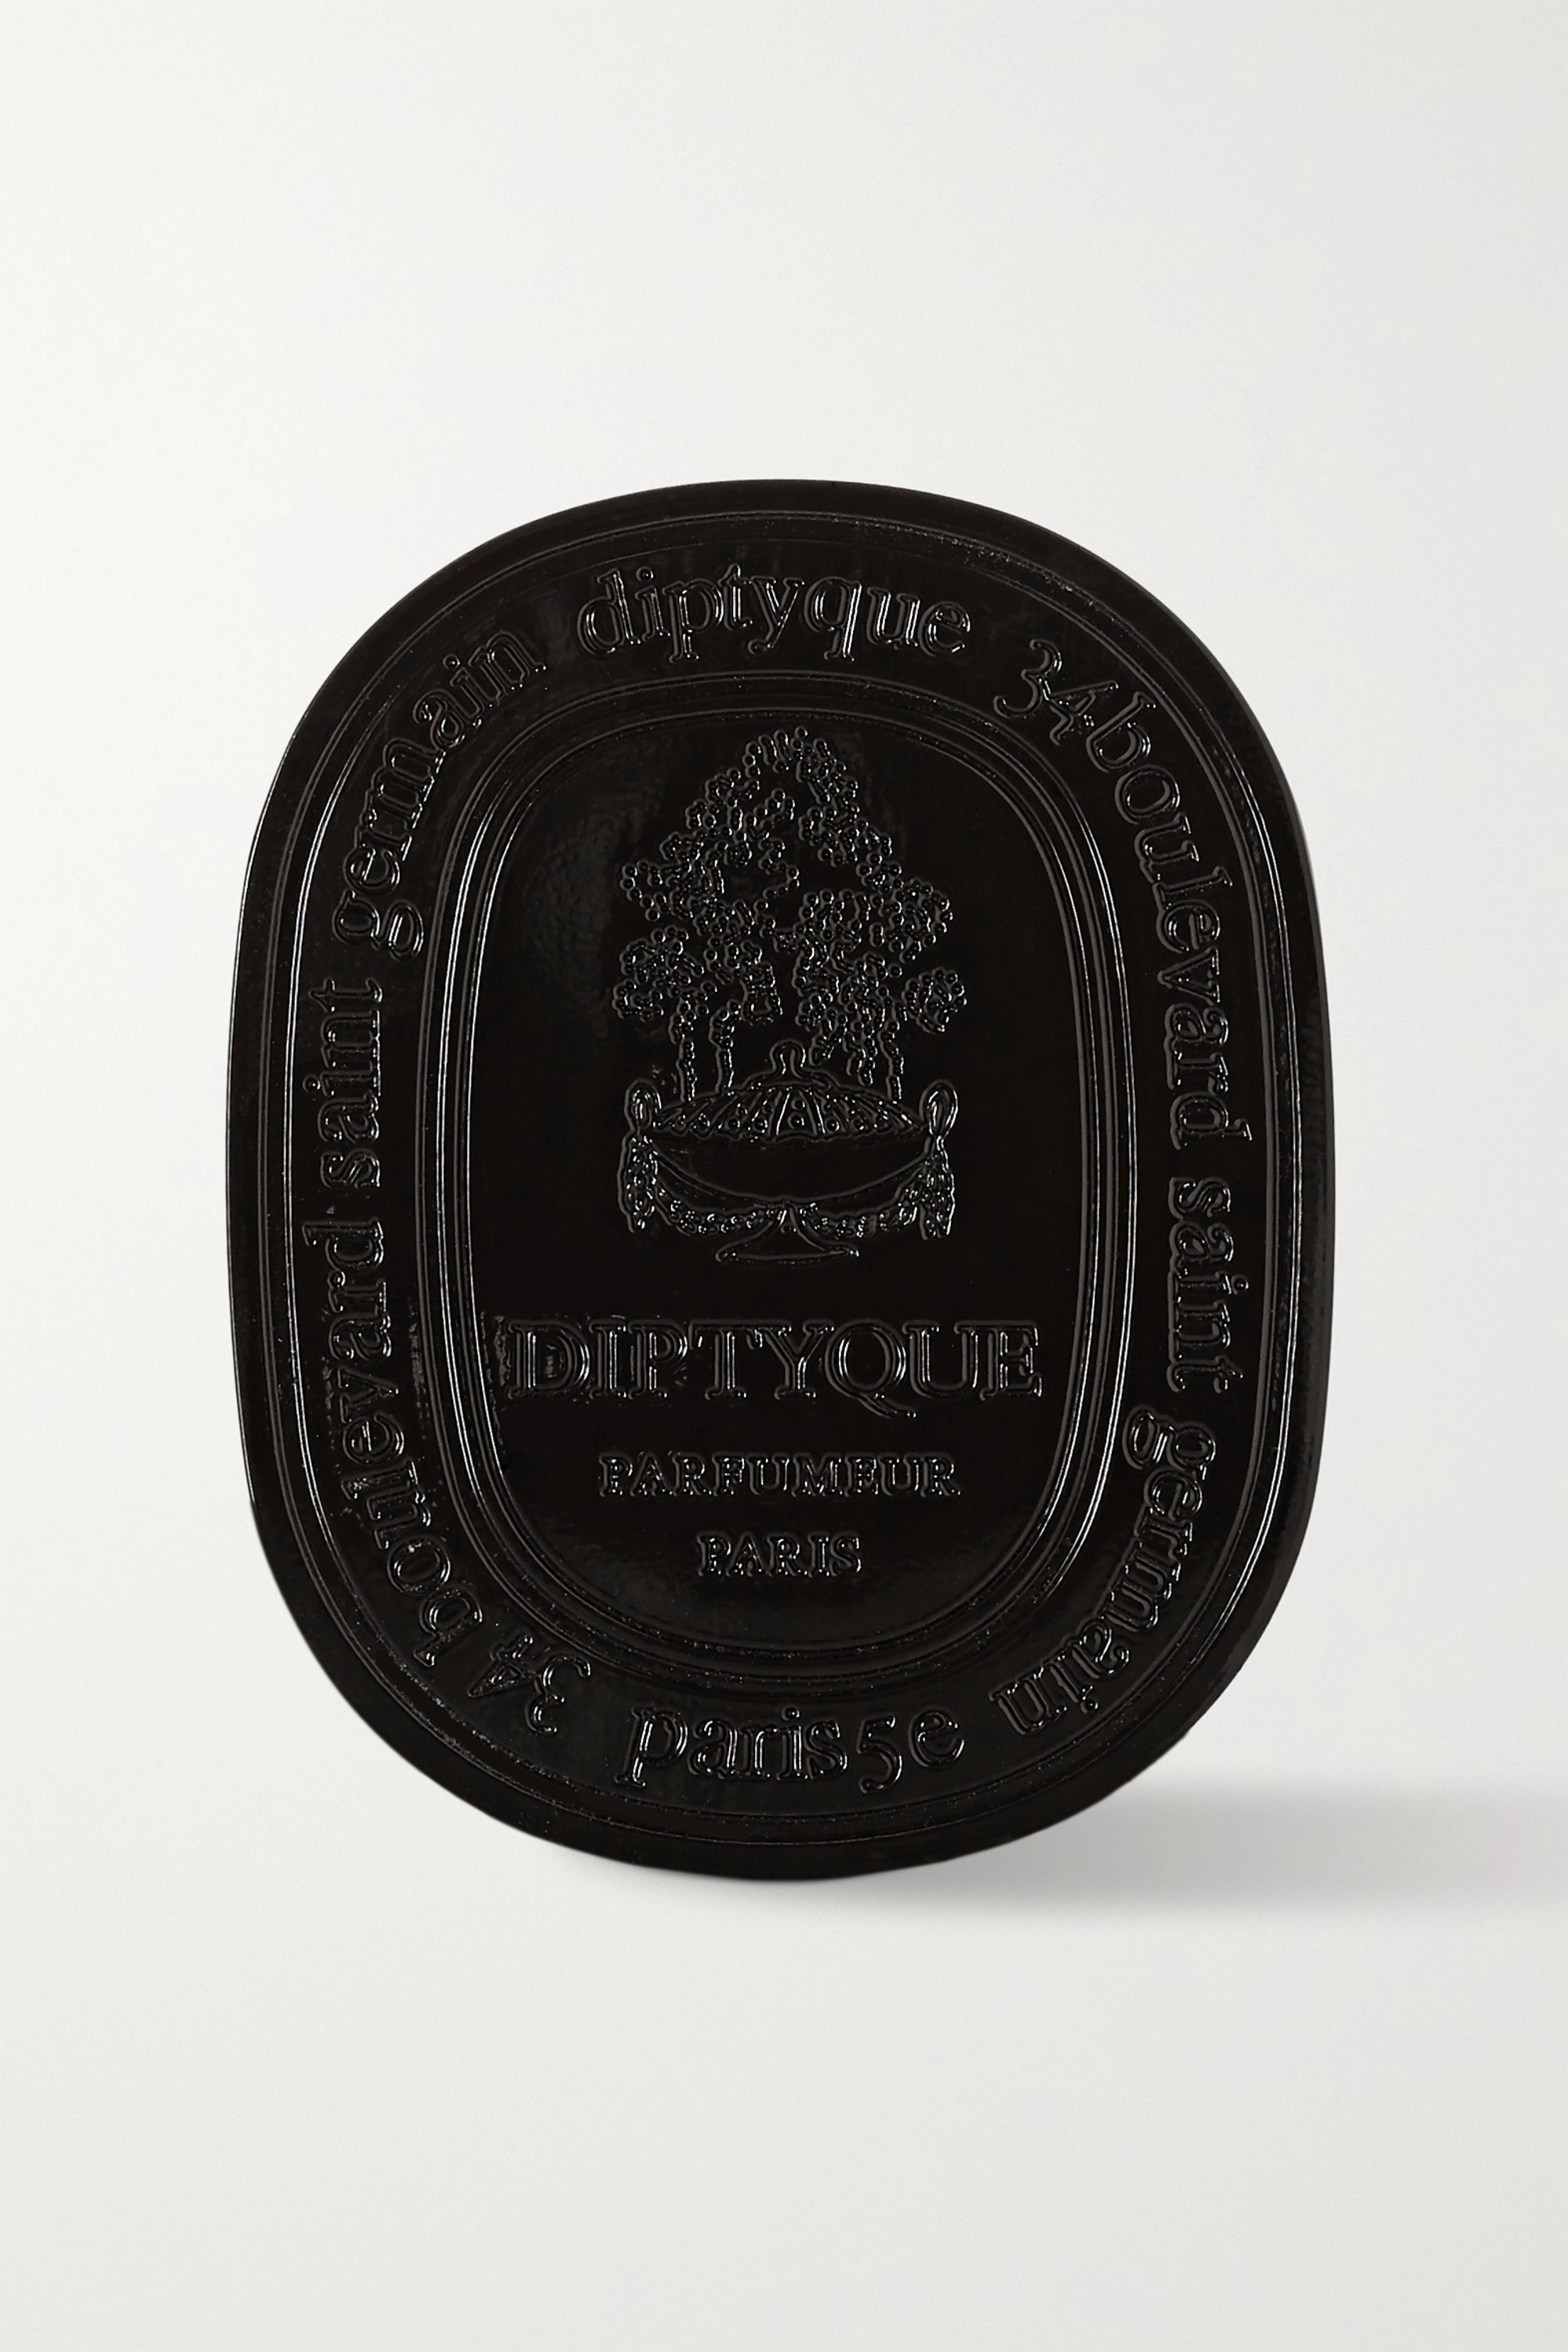 Diptyque Solid Perfume - Philosykos, 3.6g